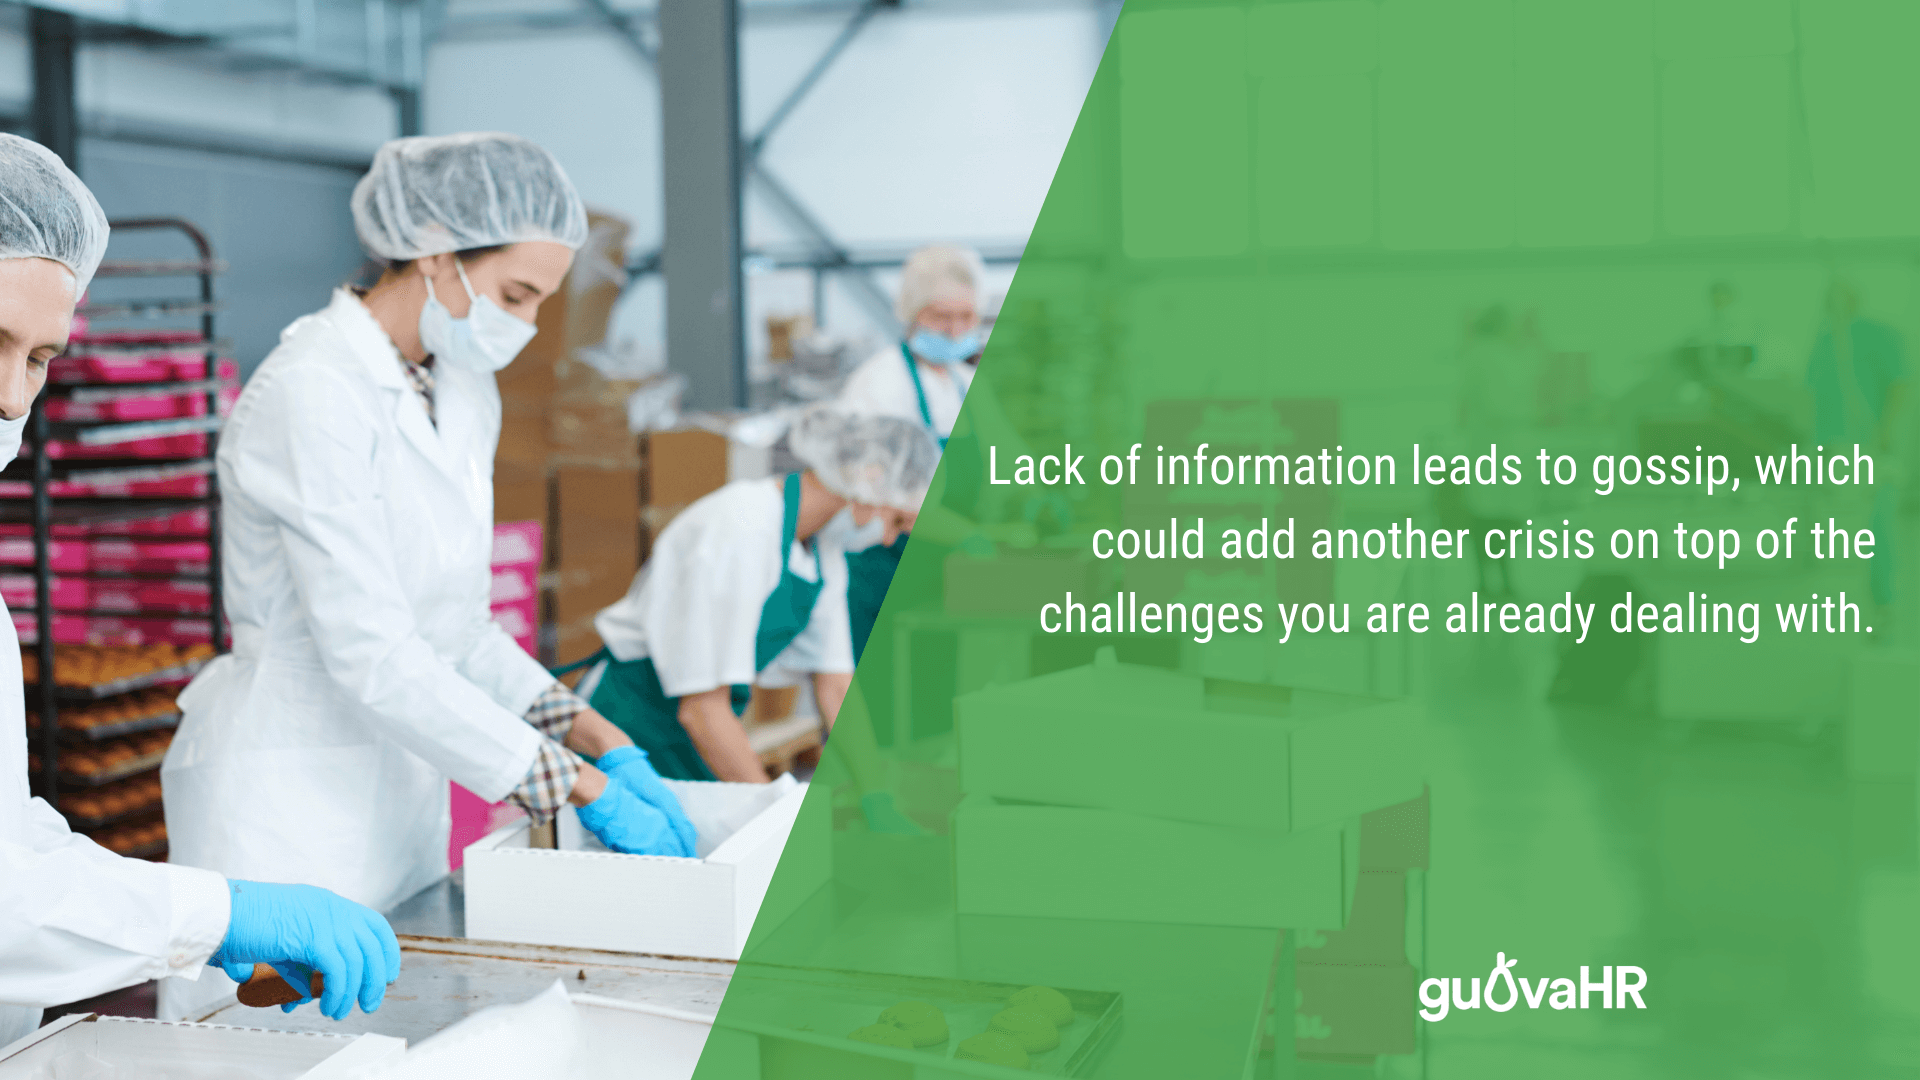 """Manufacturing workers and an internal communication problem quote that says """"Lack of information leads to gossip, which could add another crisis on top of the challenges you are already dealing with""""."""